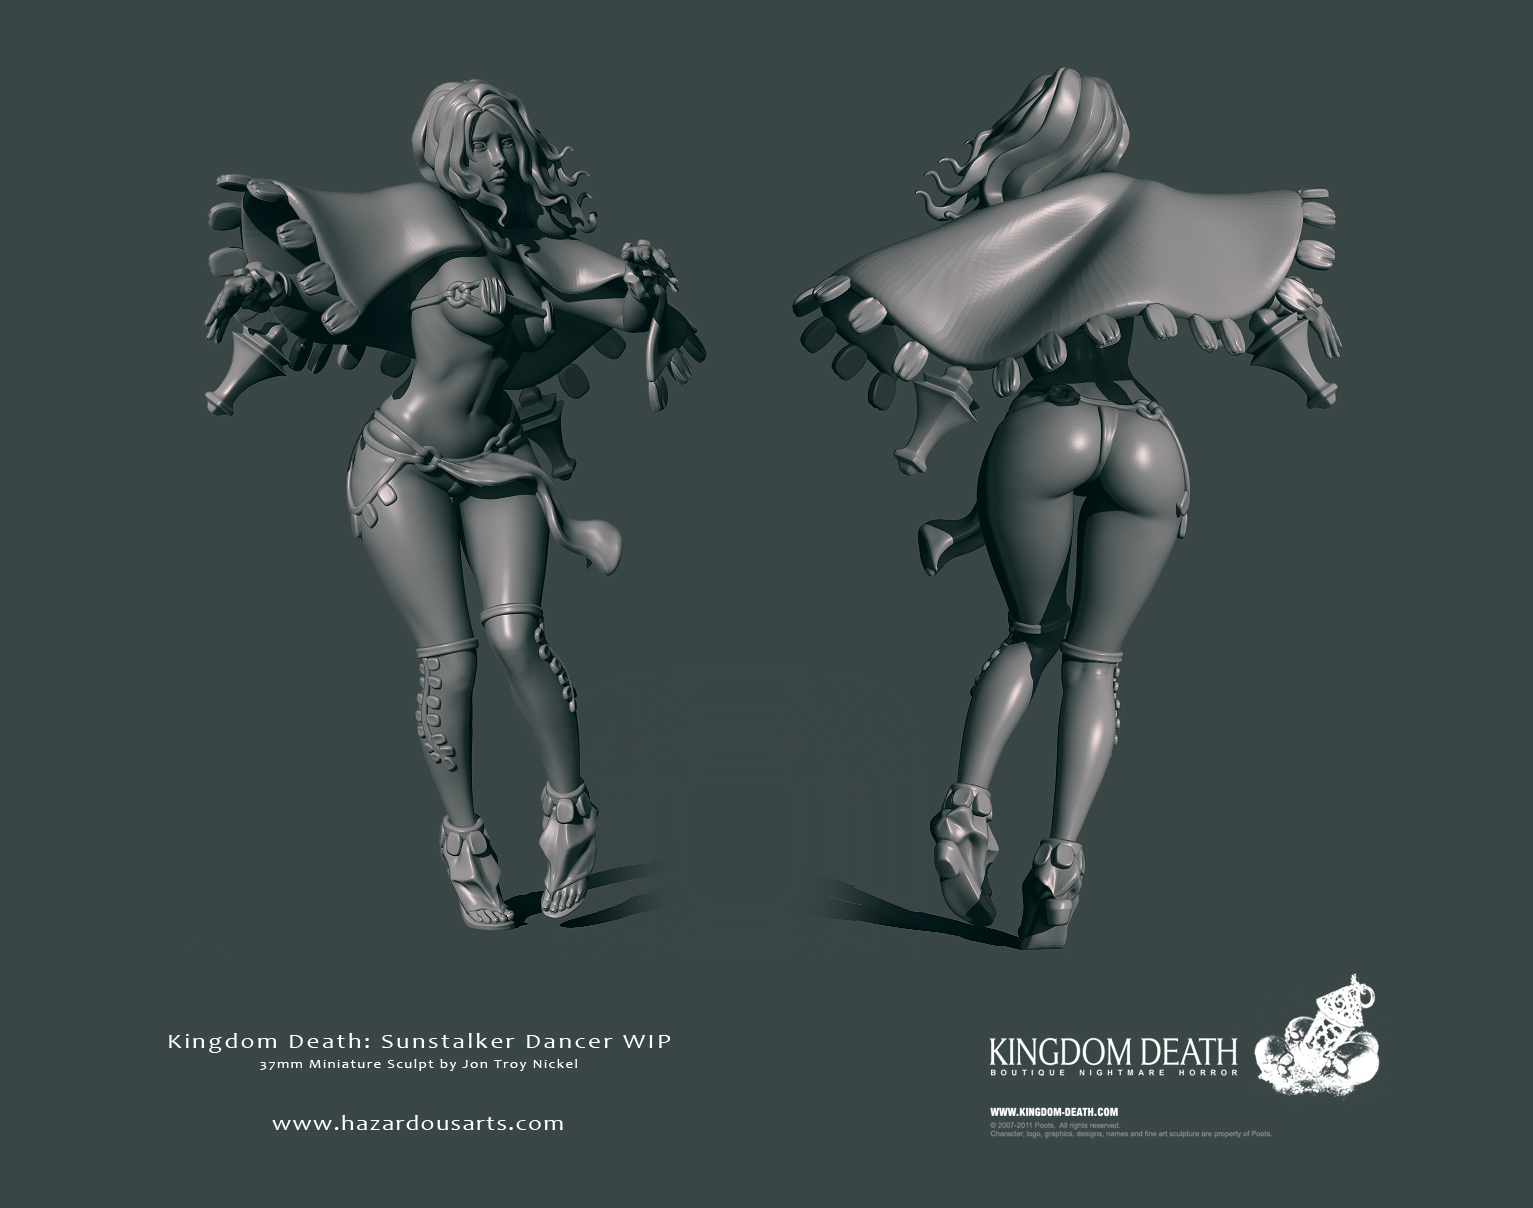 kingdom_death__sunstalker_dancer_wip4_by_hazardousarts-d5rgnvs.jpg